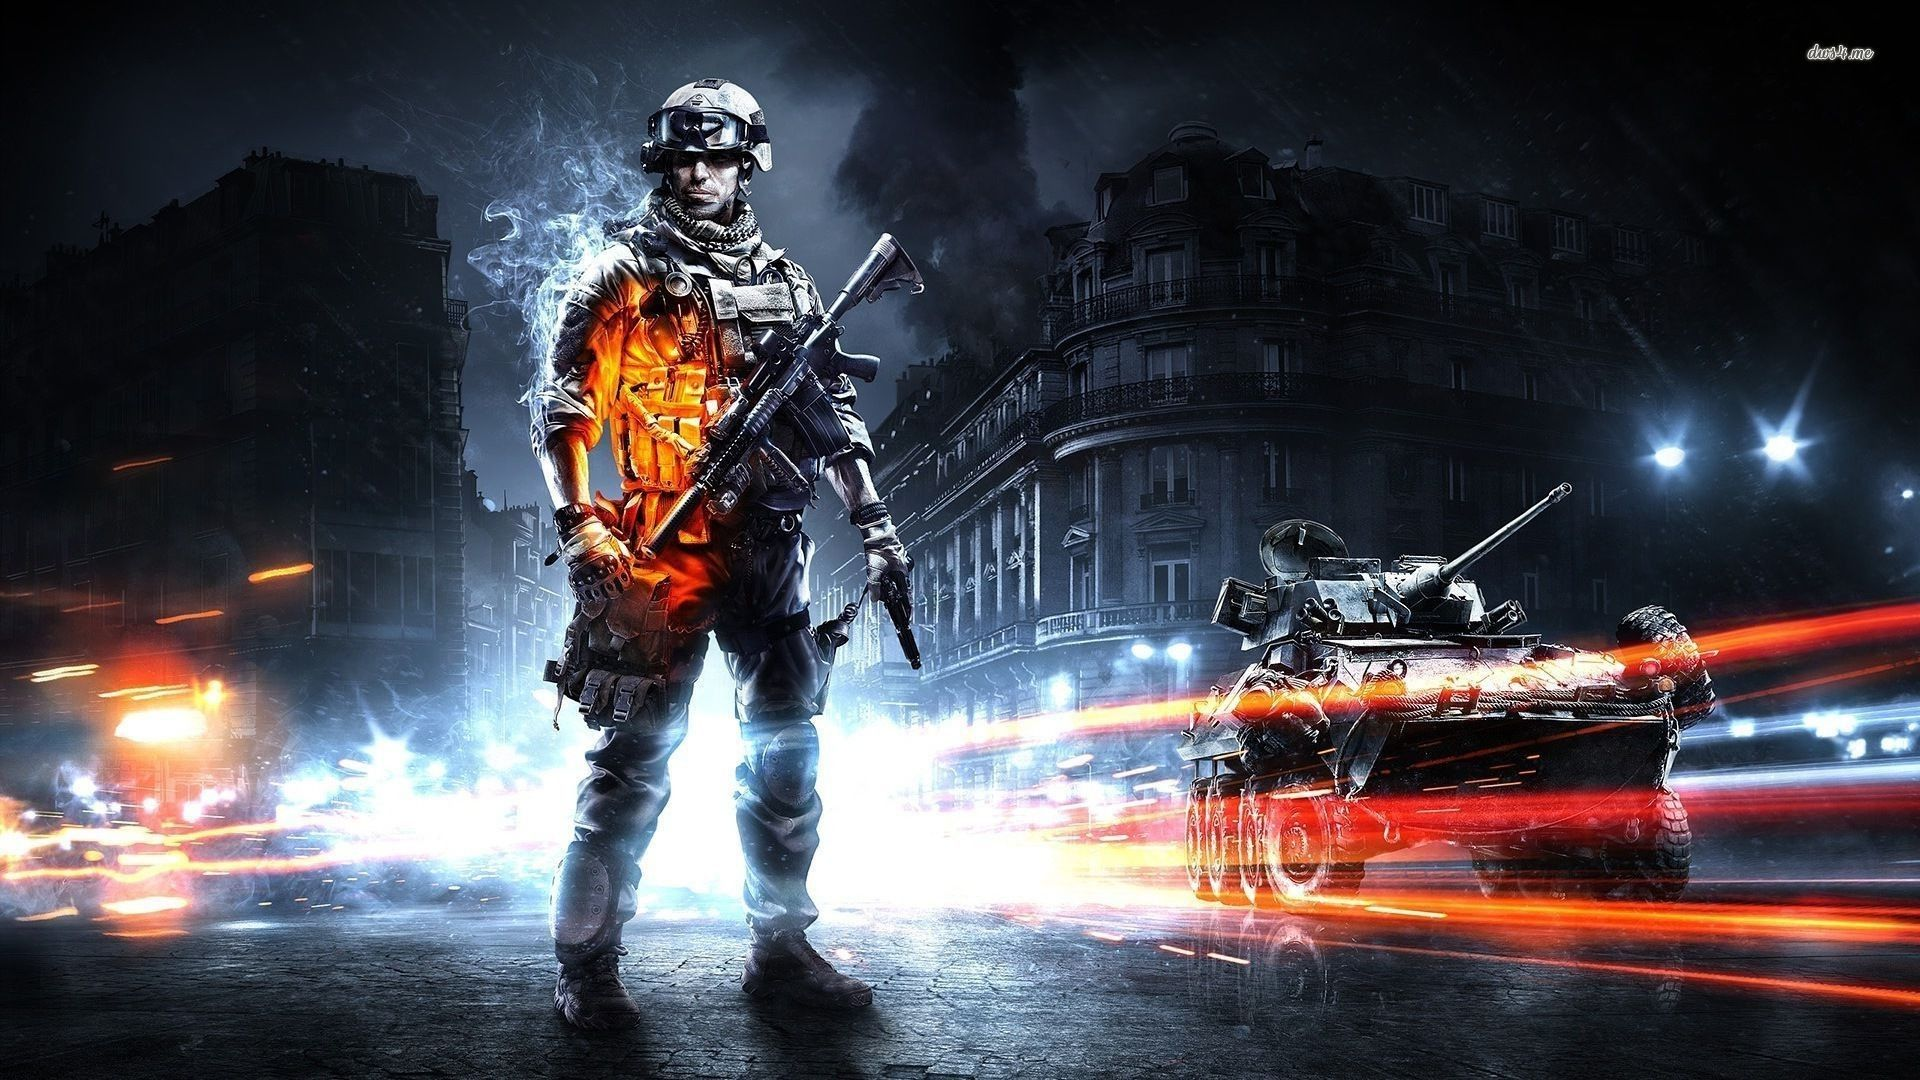 Battlefield Collection See All Wallpapers Wallpapers Background Games Battlefield 3 Battlefield World Of Warcraft Gold